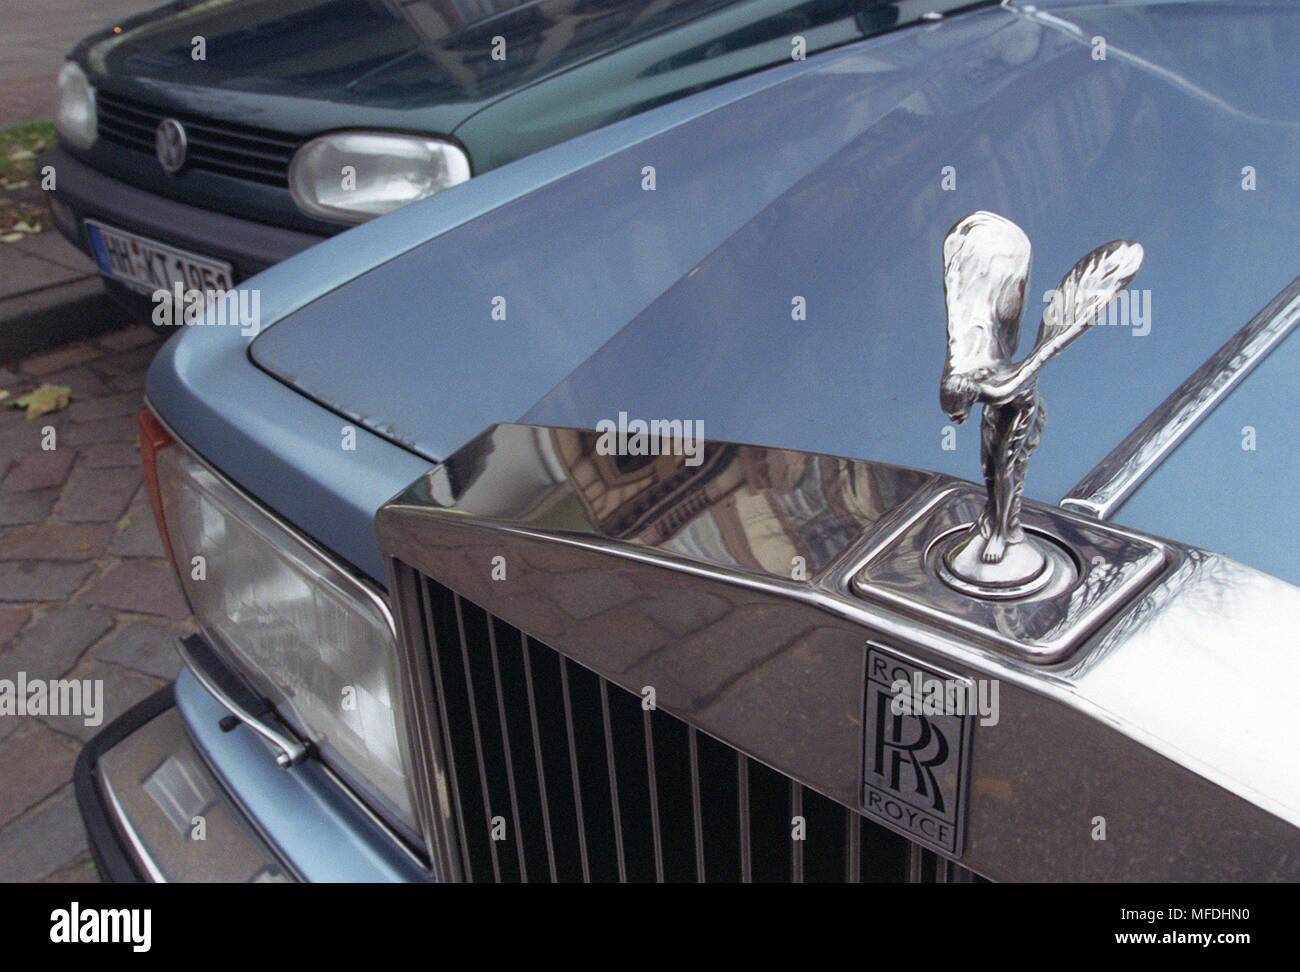 The Pristine Kuhler Hood Of A Rolls Royce R Next To A Golf Of The